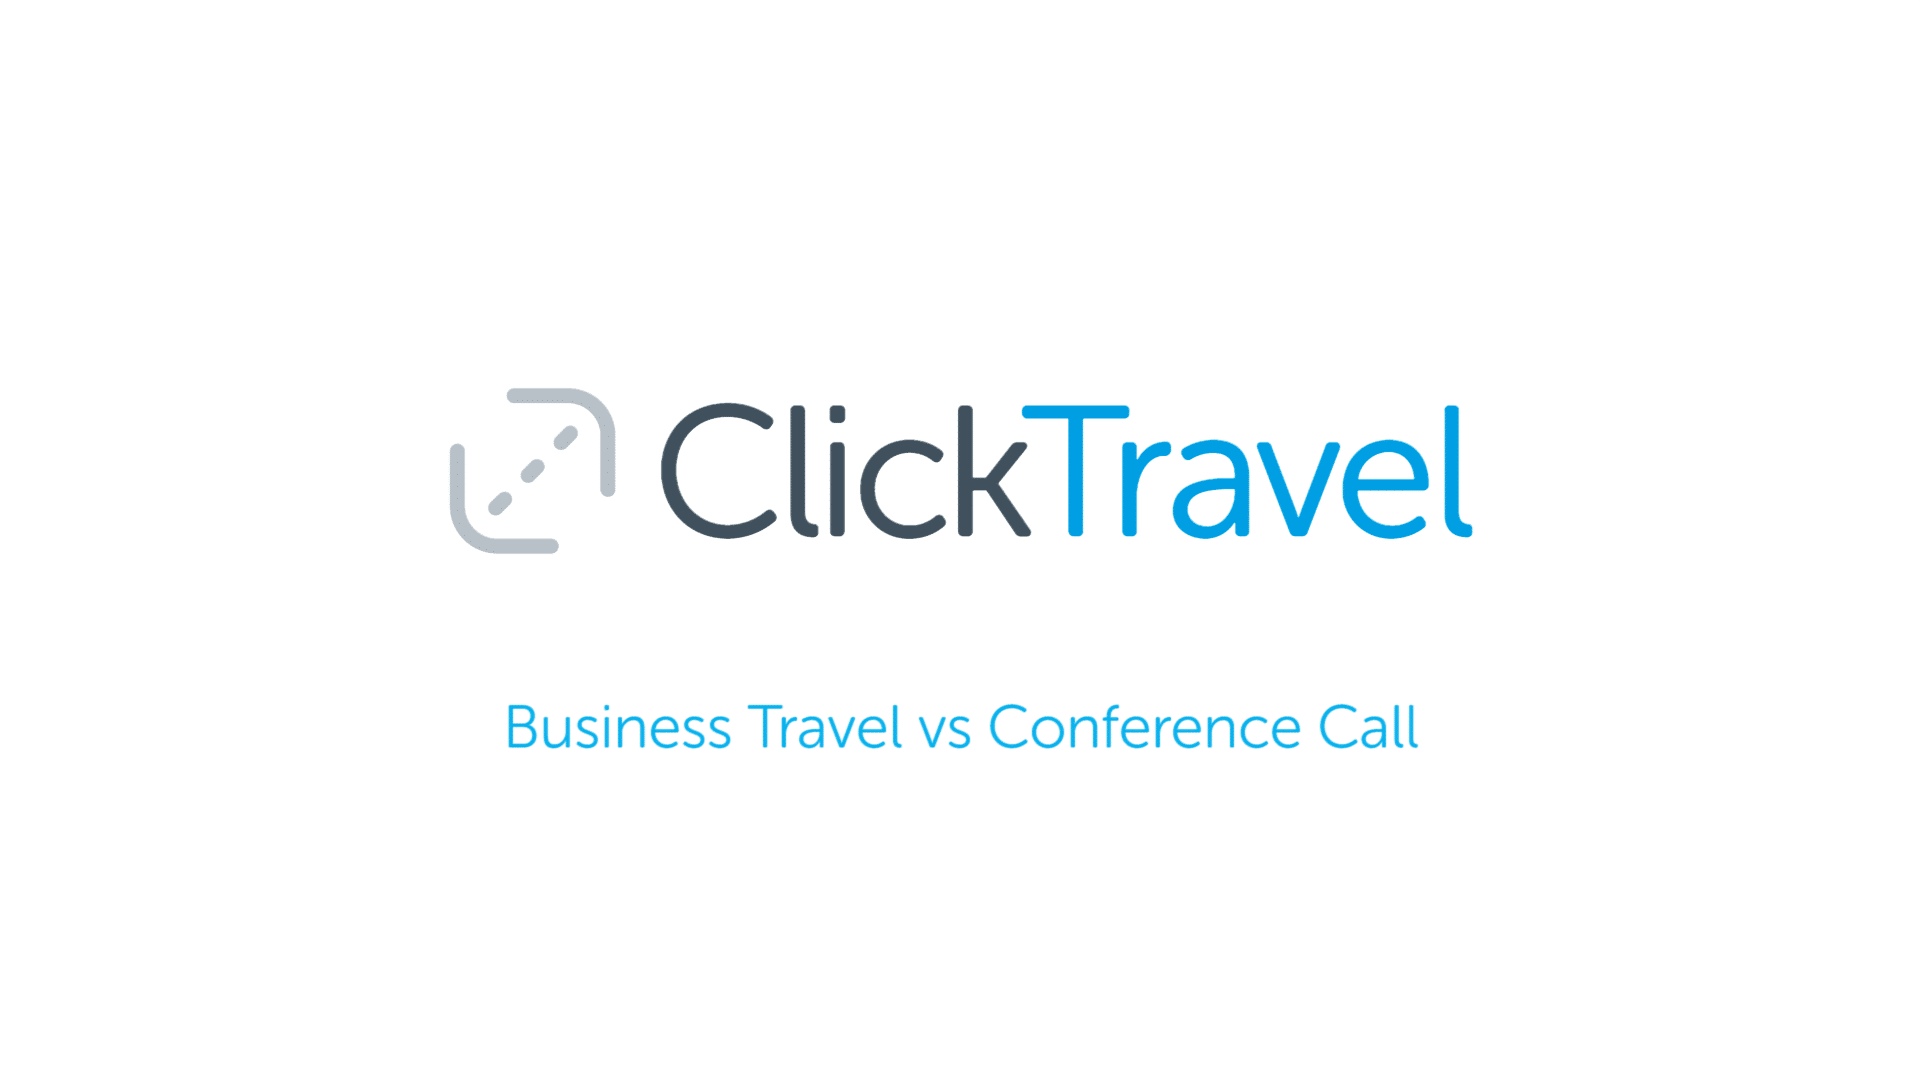 [VIDEO] Business travel vs conference call